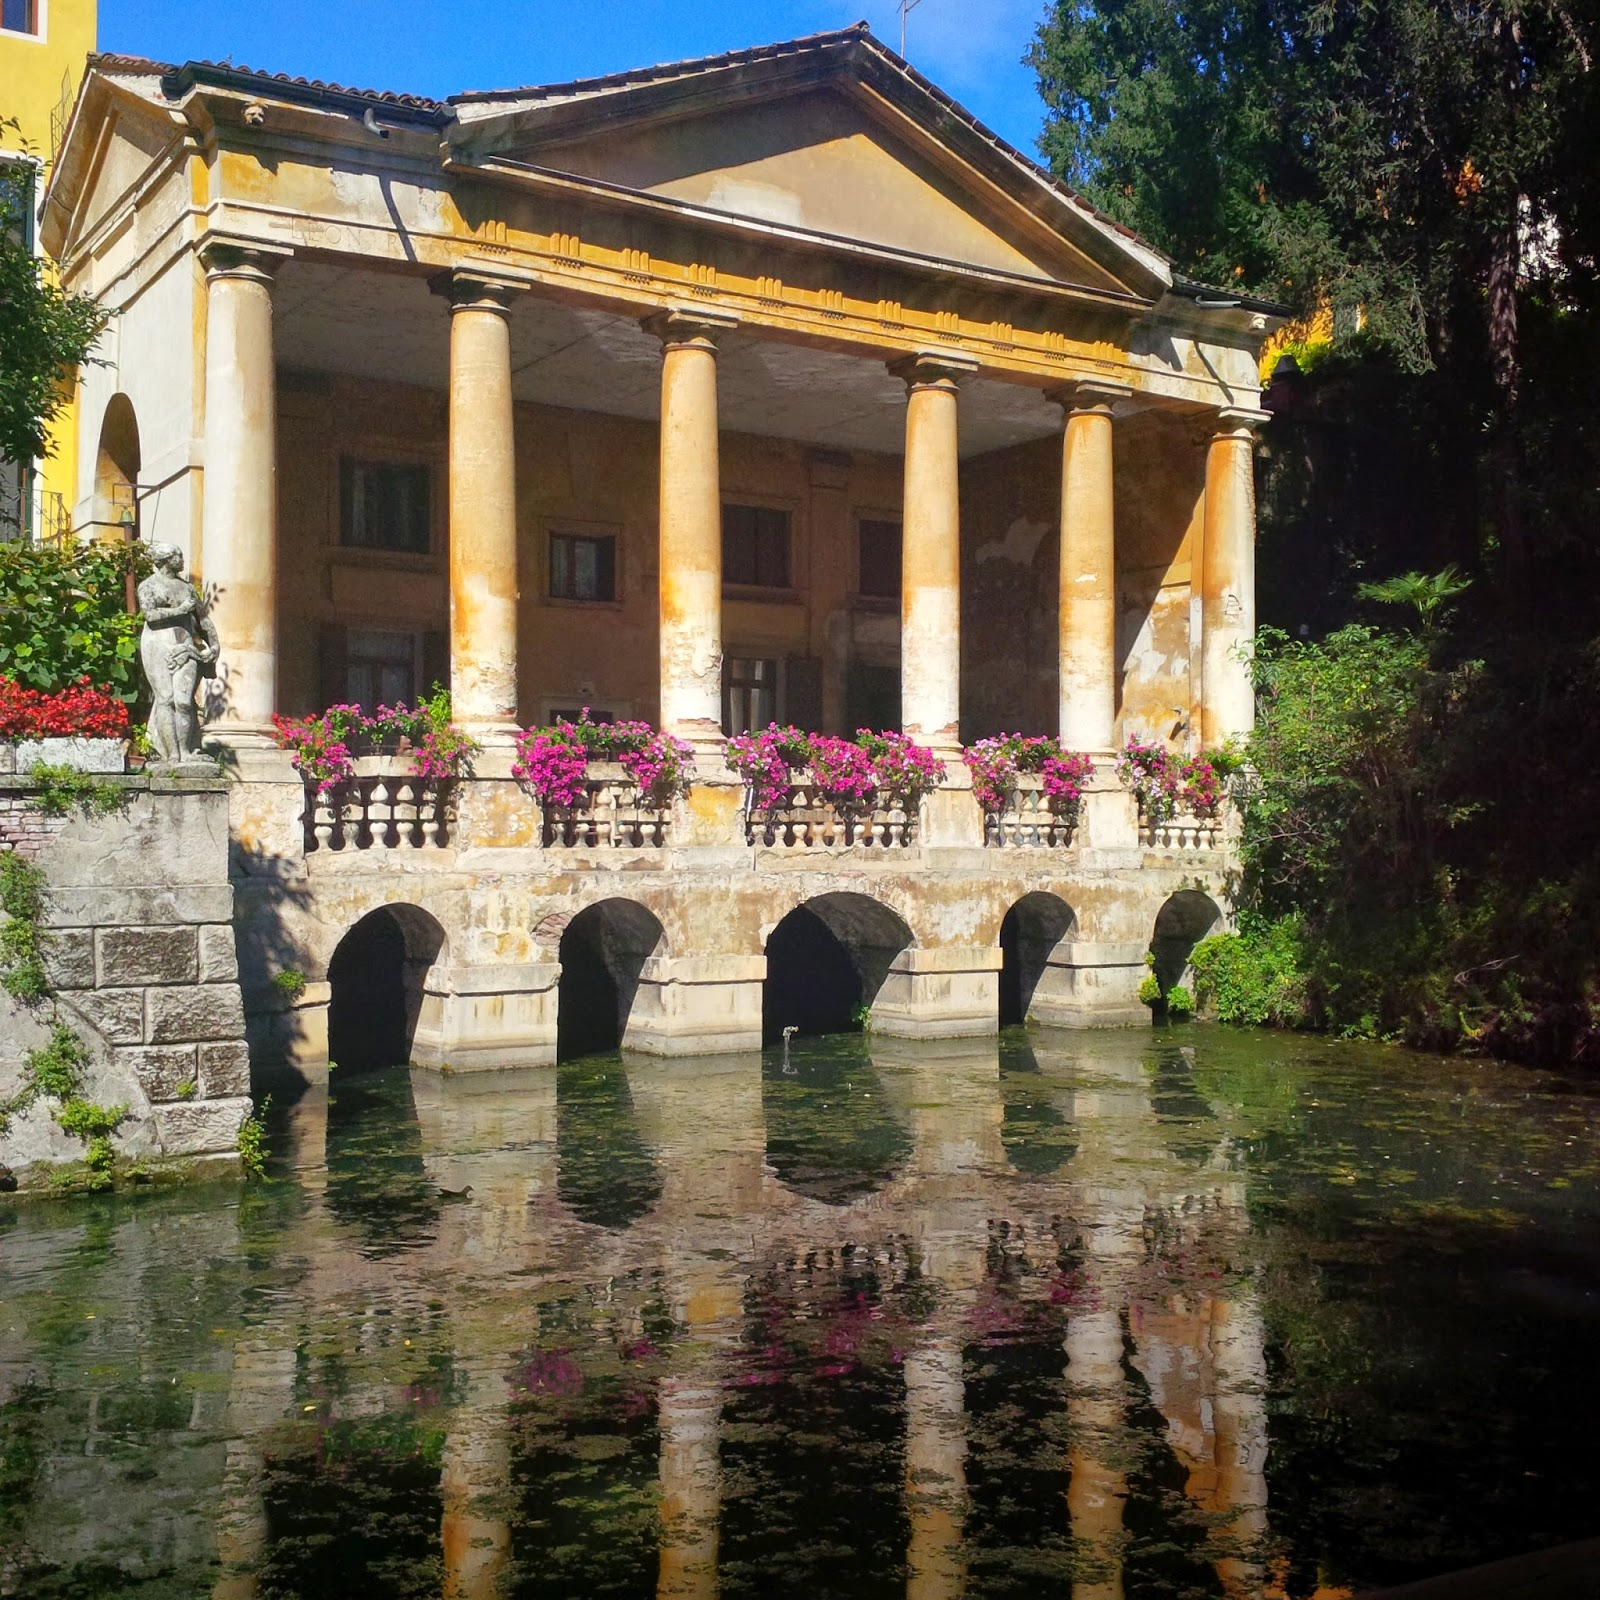 A building designed by Palladio in one of Vicenza's parks